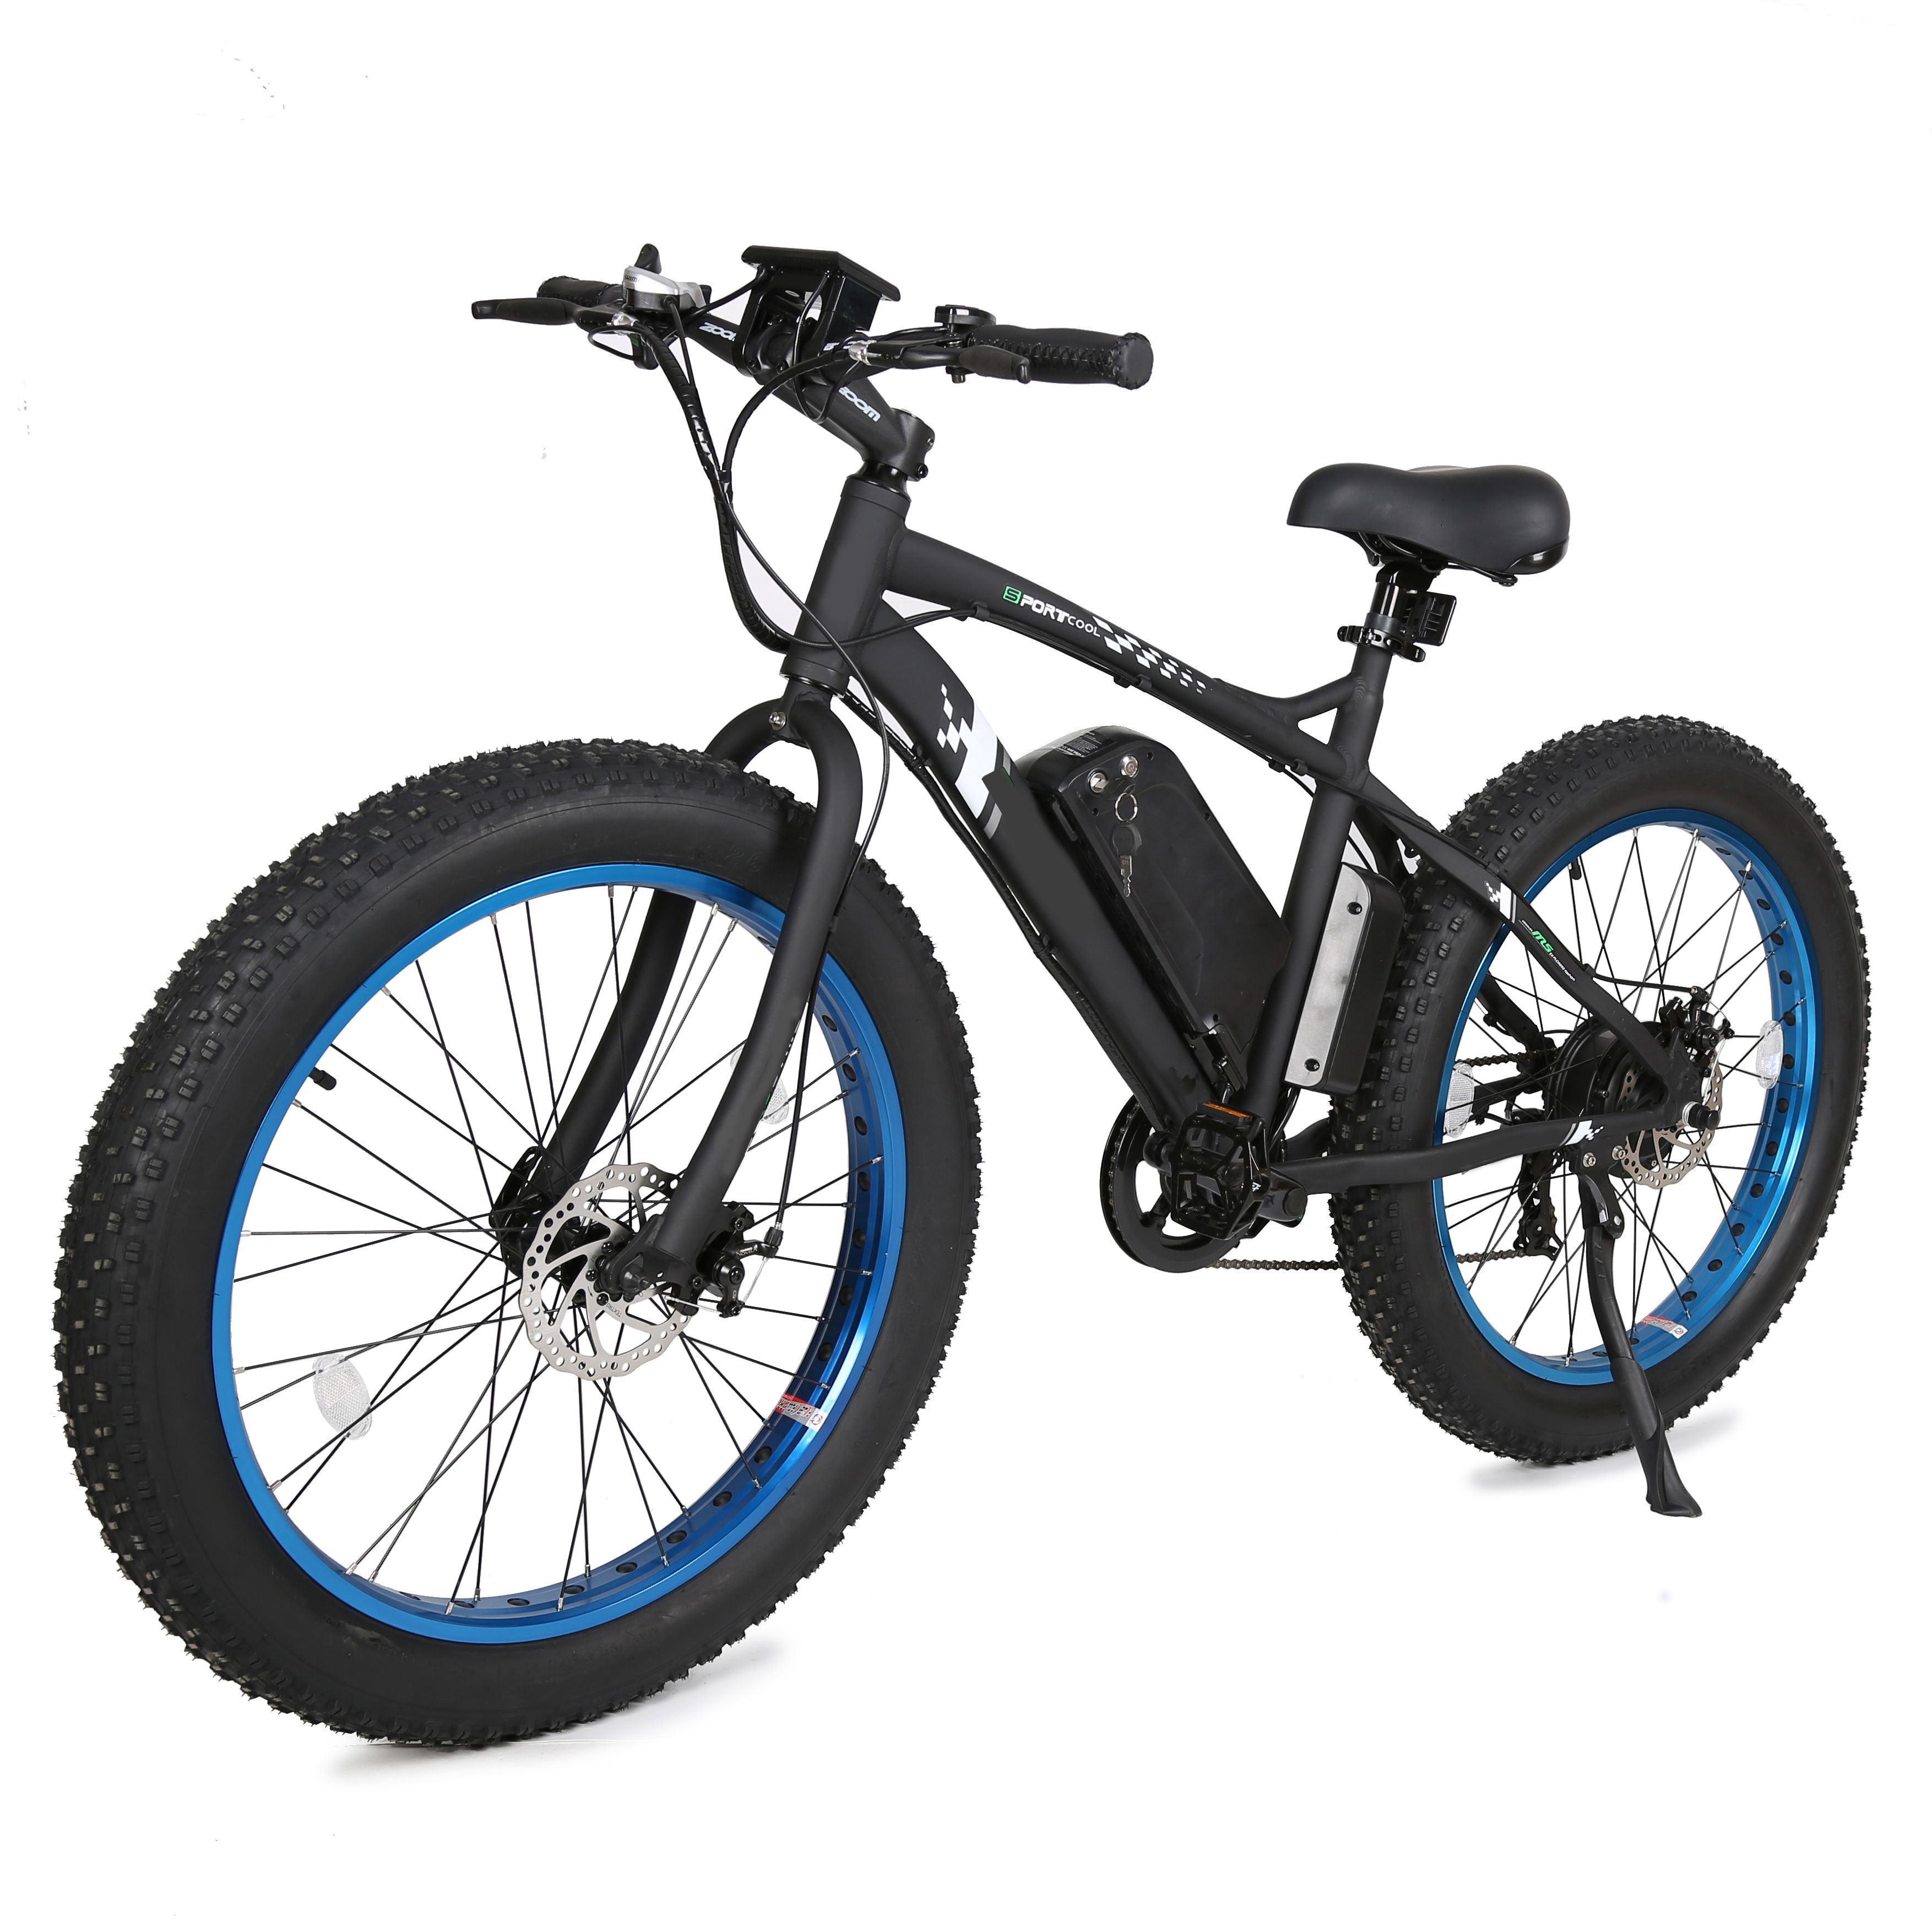 Alibaba Com New Arrived Fatbike26 Electric Bicycle City Ebike